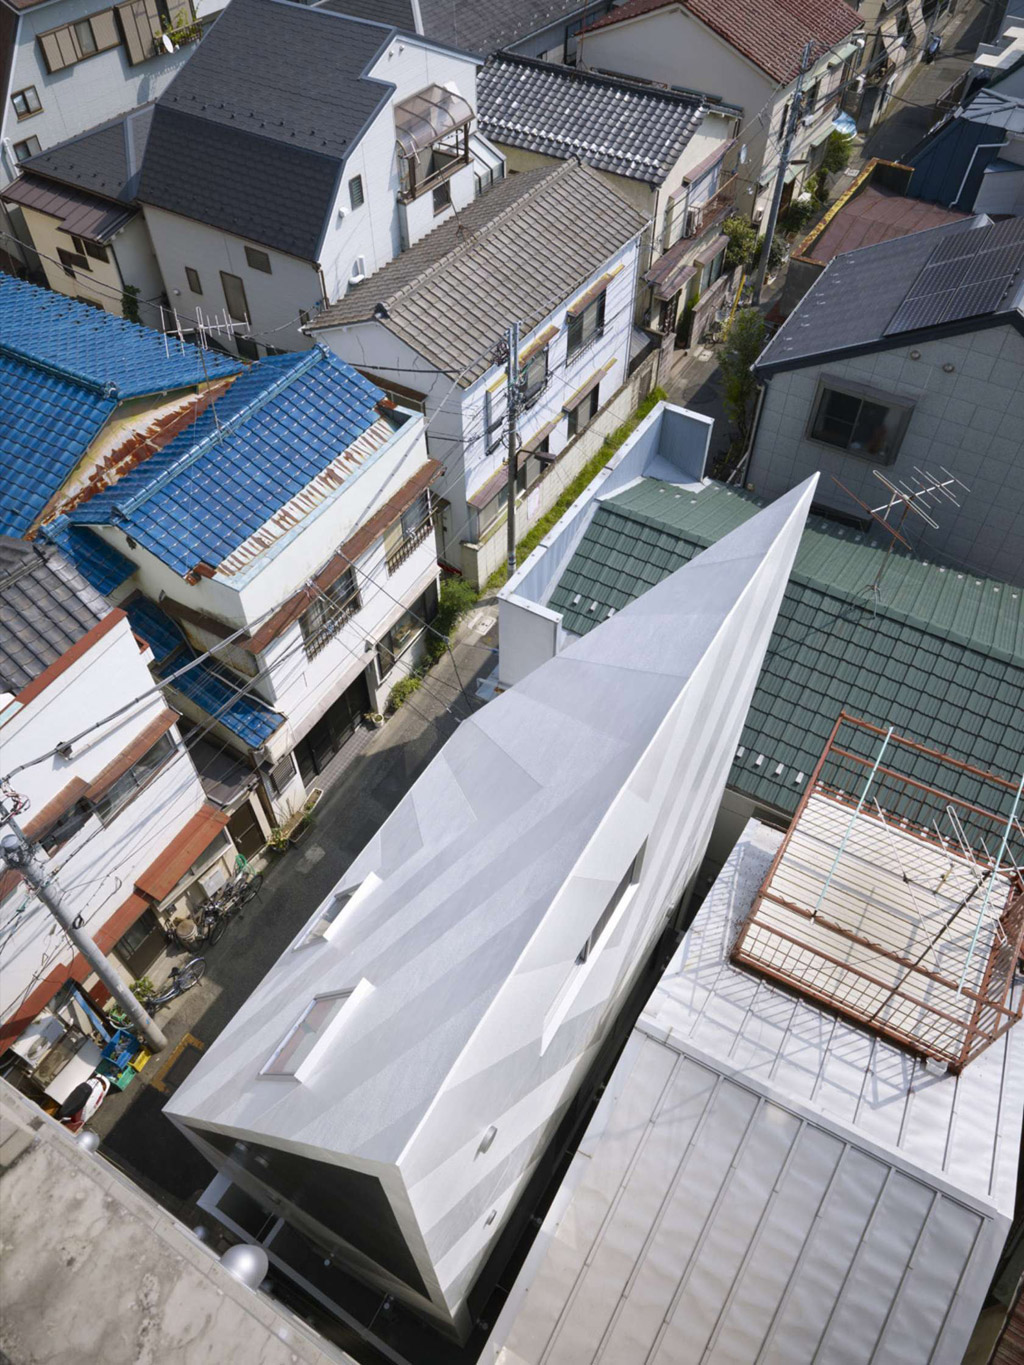 zyx-house-naf-architect-and-design-8